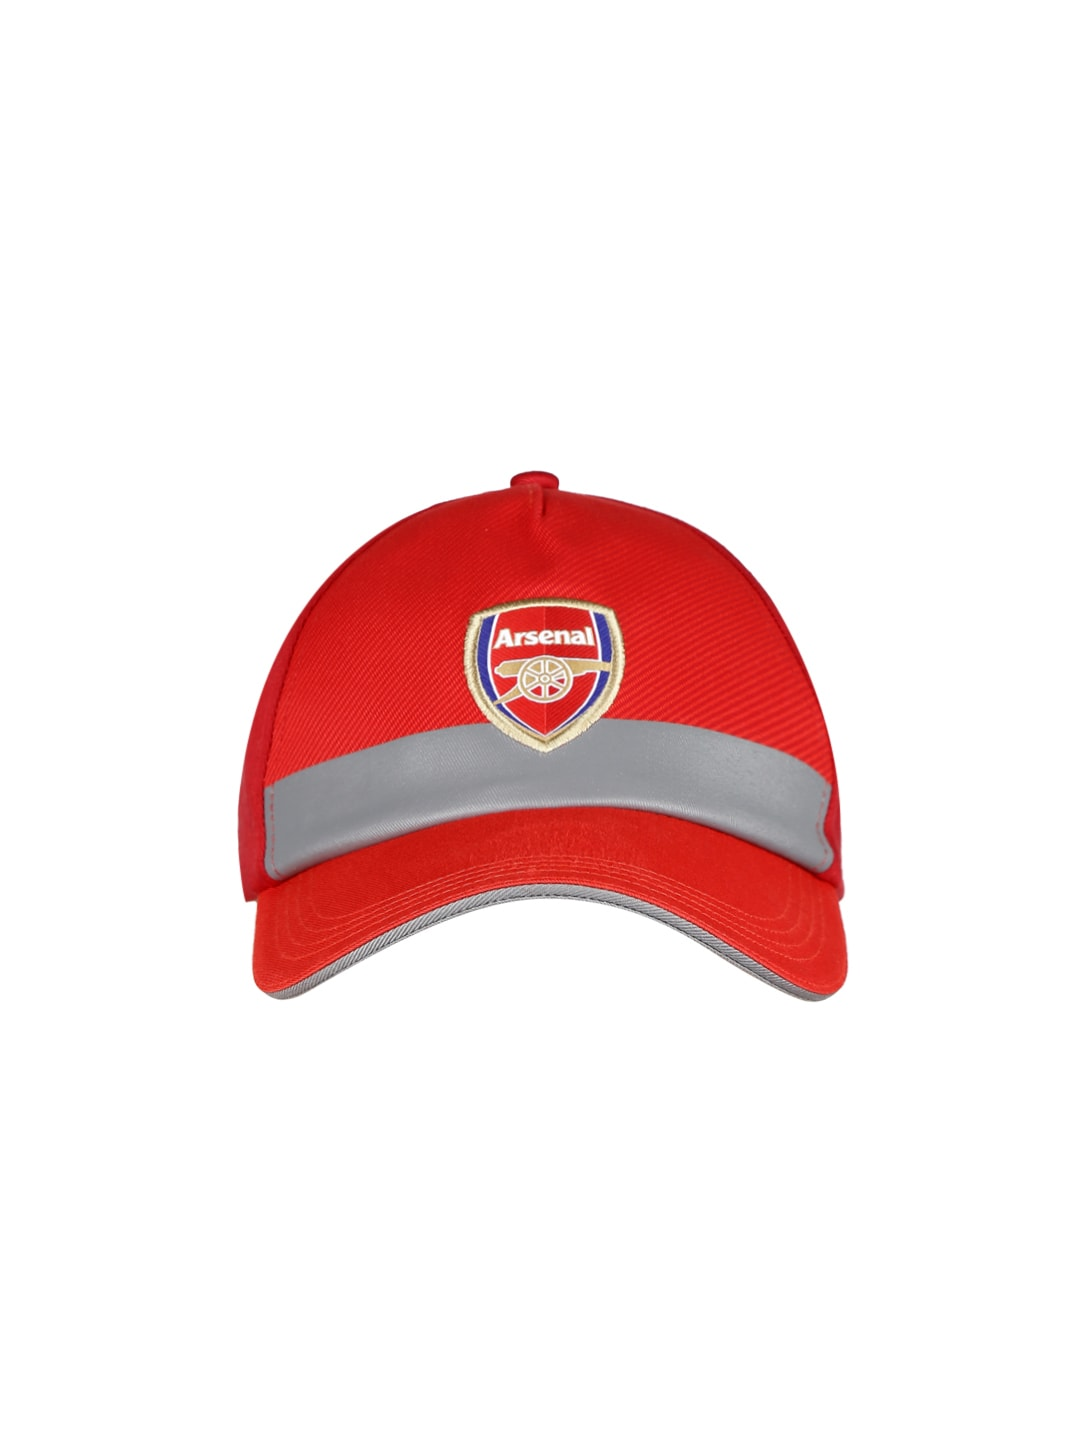 Puma Arsenal Caps - Buy Puma Arsenal Caps online in India fe6f30dddbf